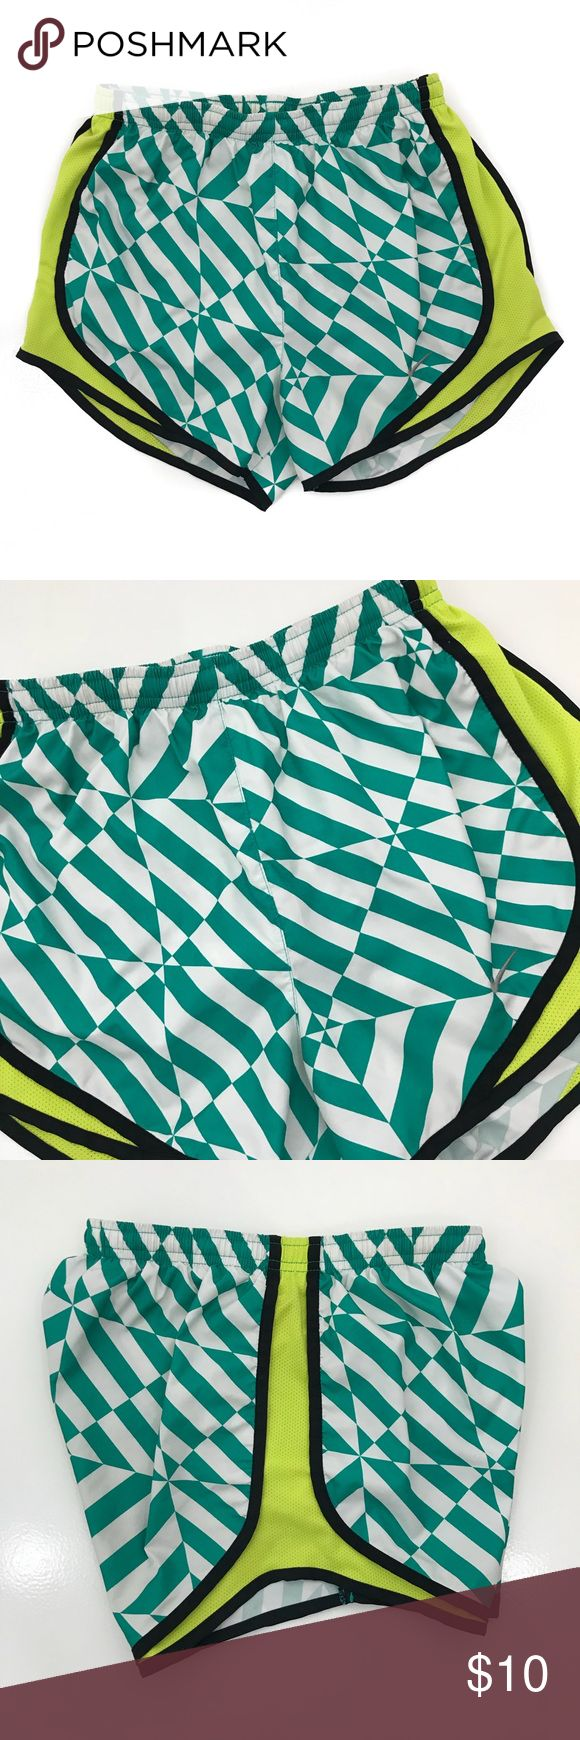 Nike Dri-Fit Shorts • Graphic Dri-Fit shorts with a drawstring waist. These are in great condition. Nike Shorts